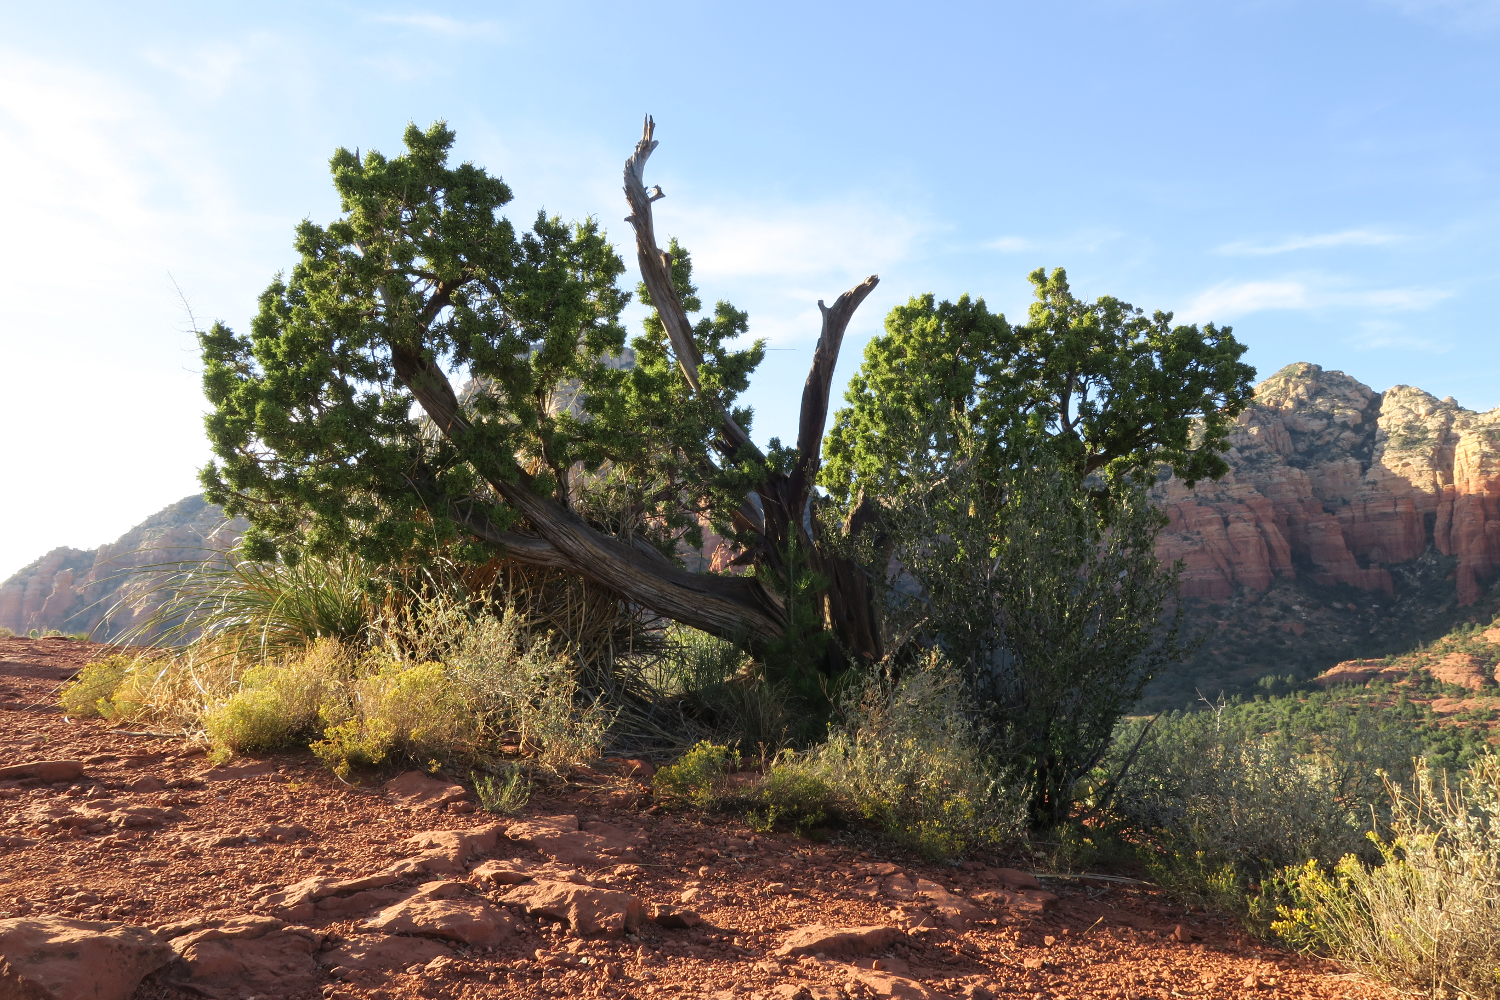 Photo of tree clinging to rock